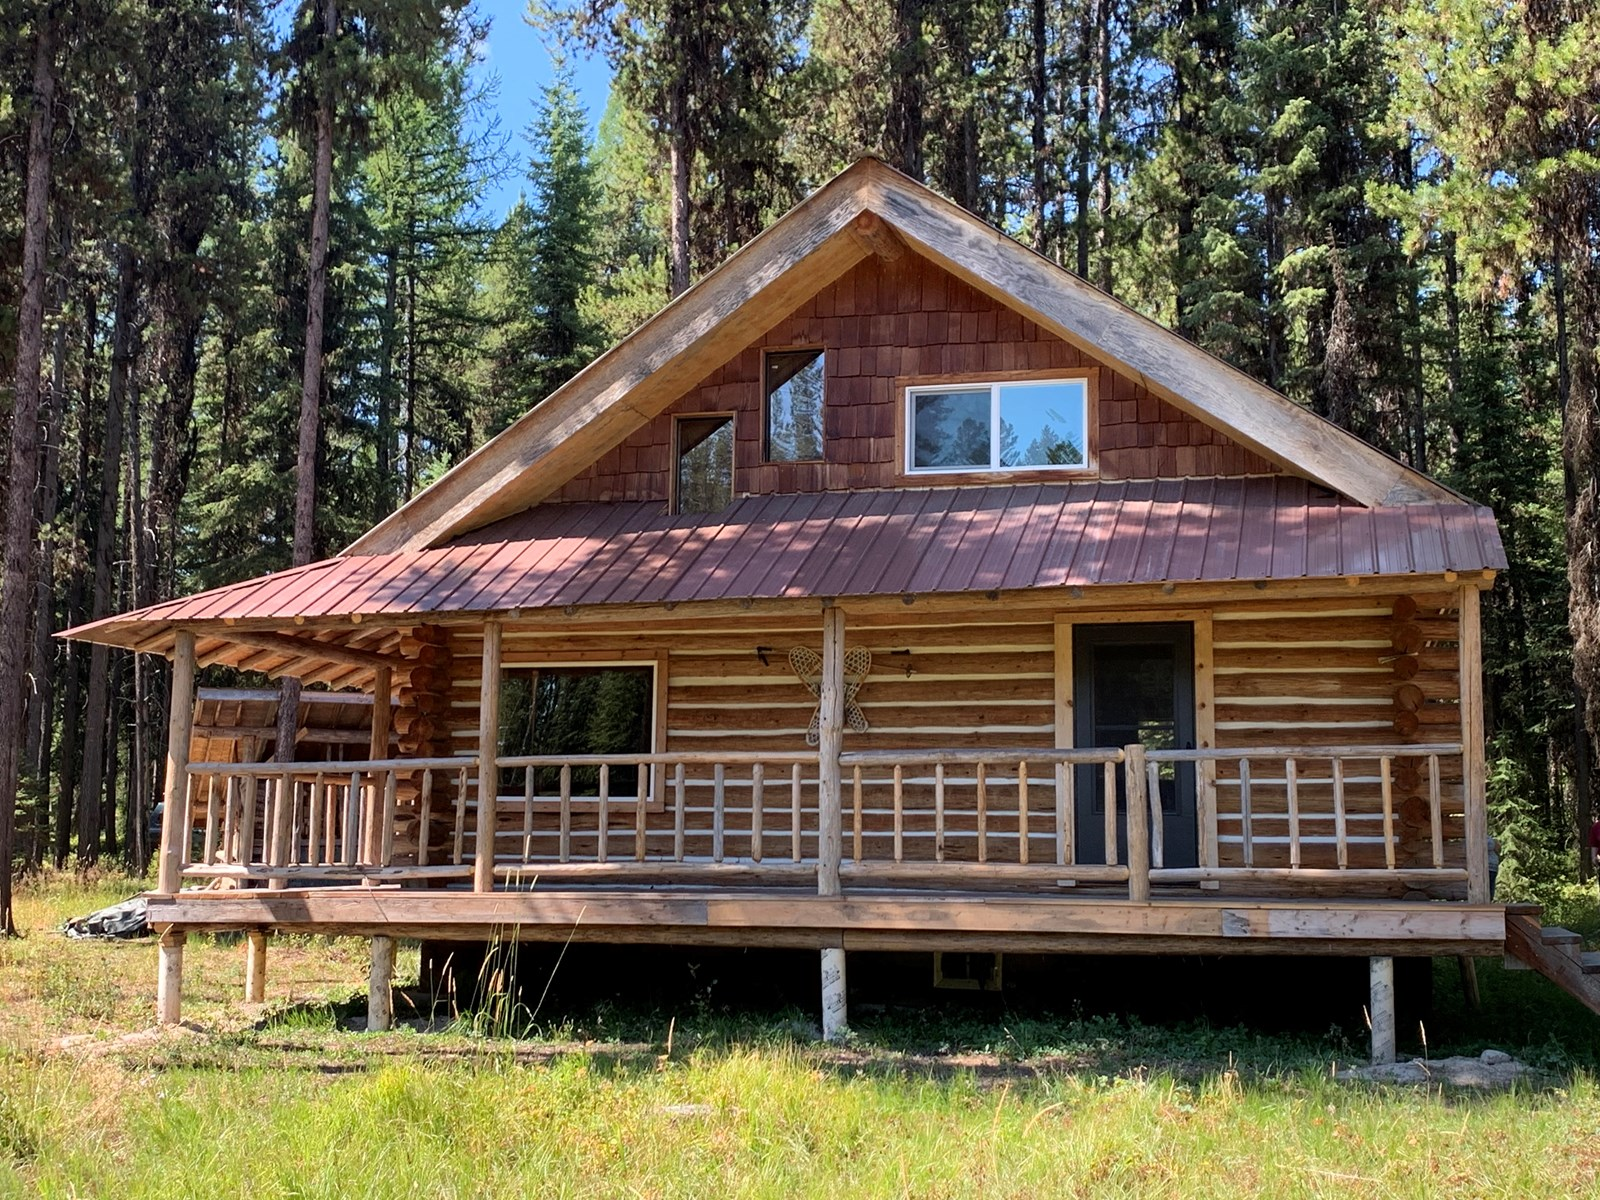 HUNTING CAMP BORDER NATIONAL FOREST MONTANA